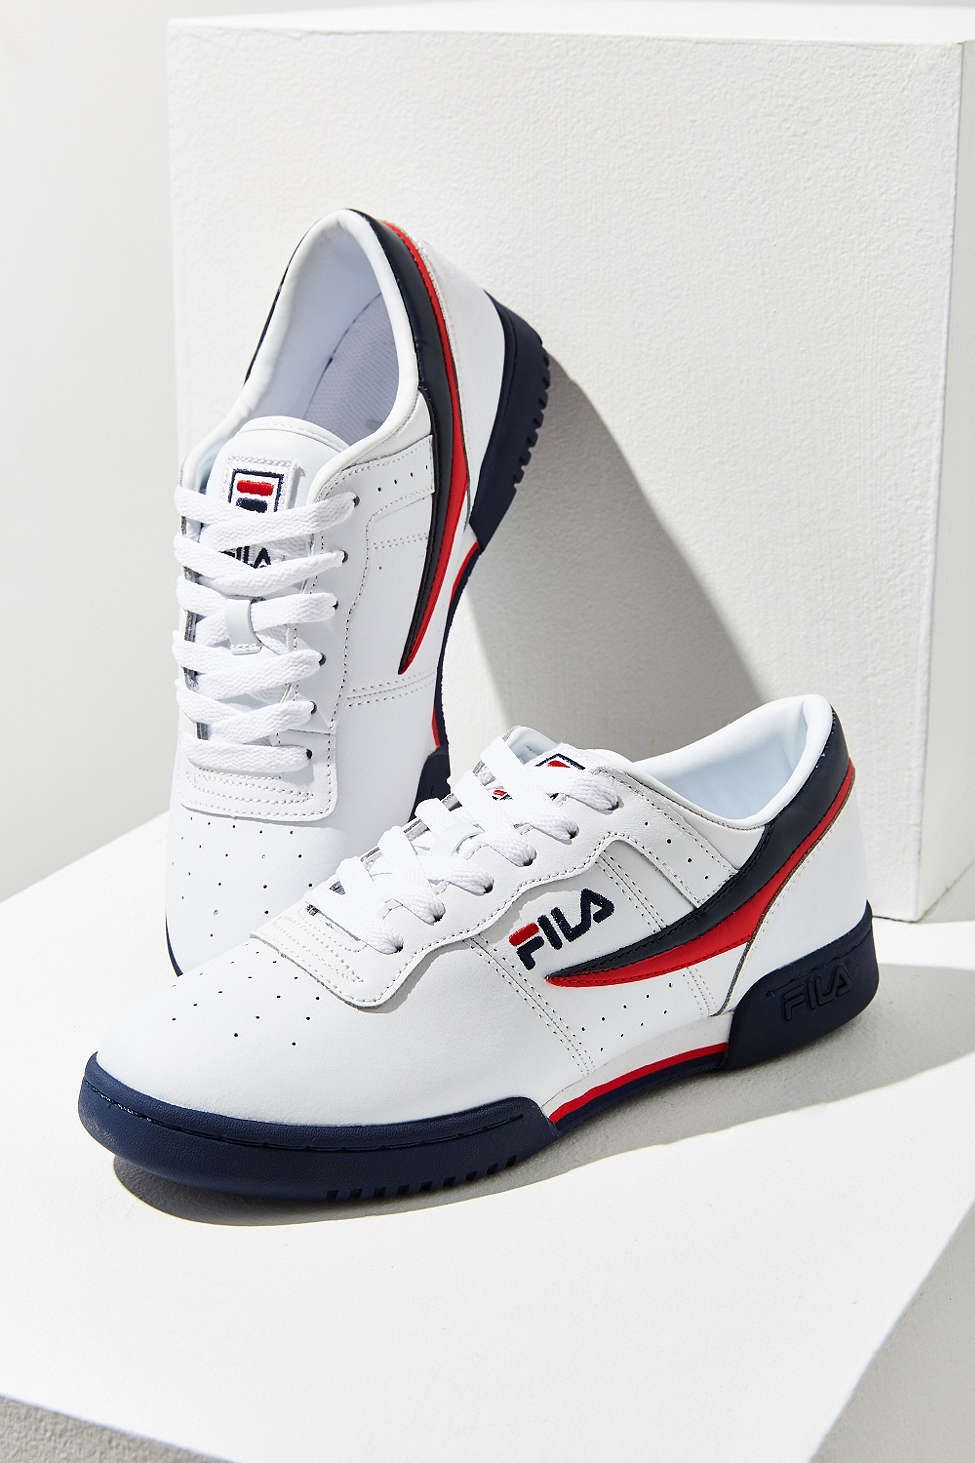 fila shoes blue red and white plaid background wallpaper